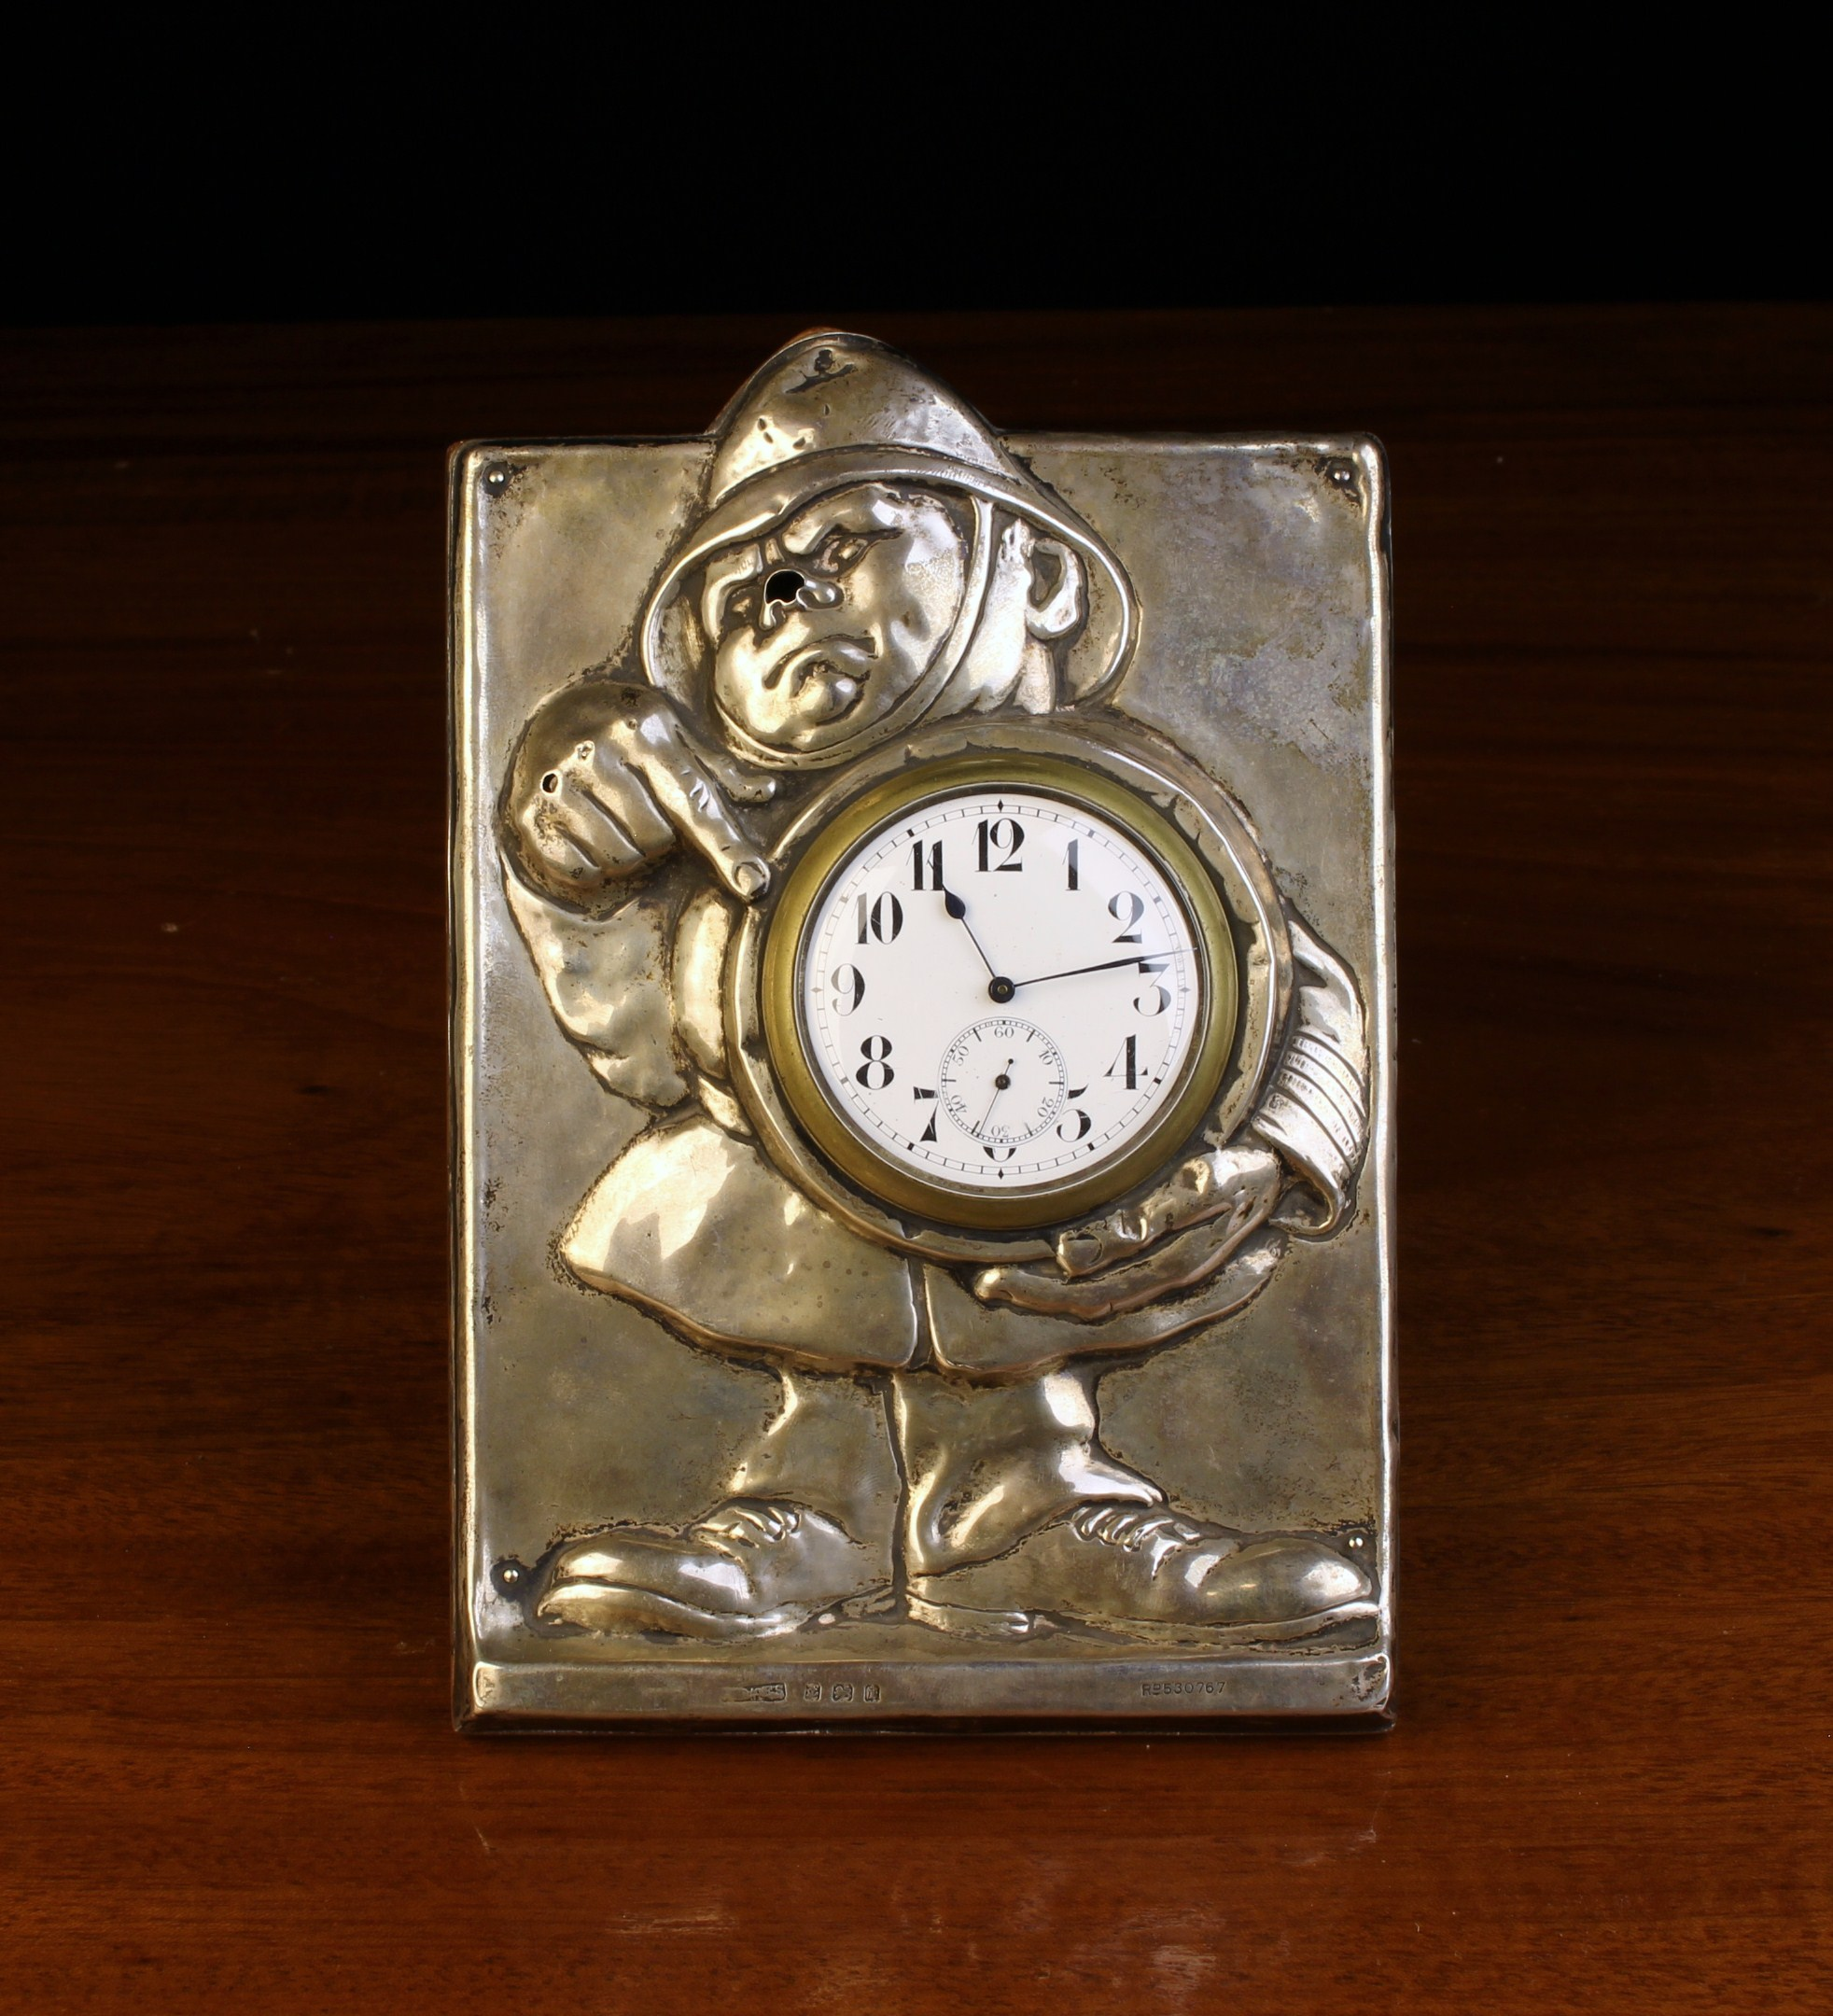 An Early 20th Century Novelty Silver Clad Strut Clock hallmarked Birmingham 1908 and numbered Rd